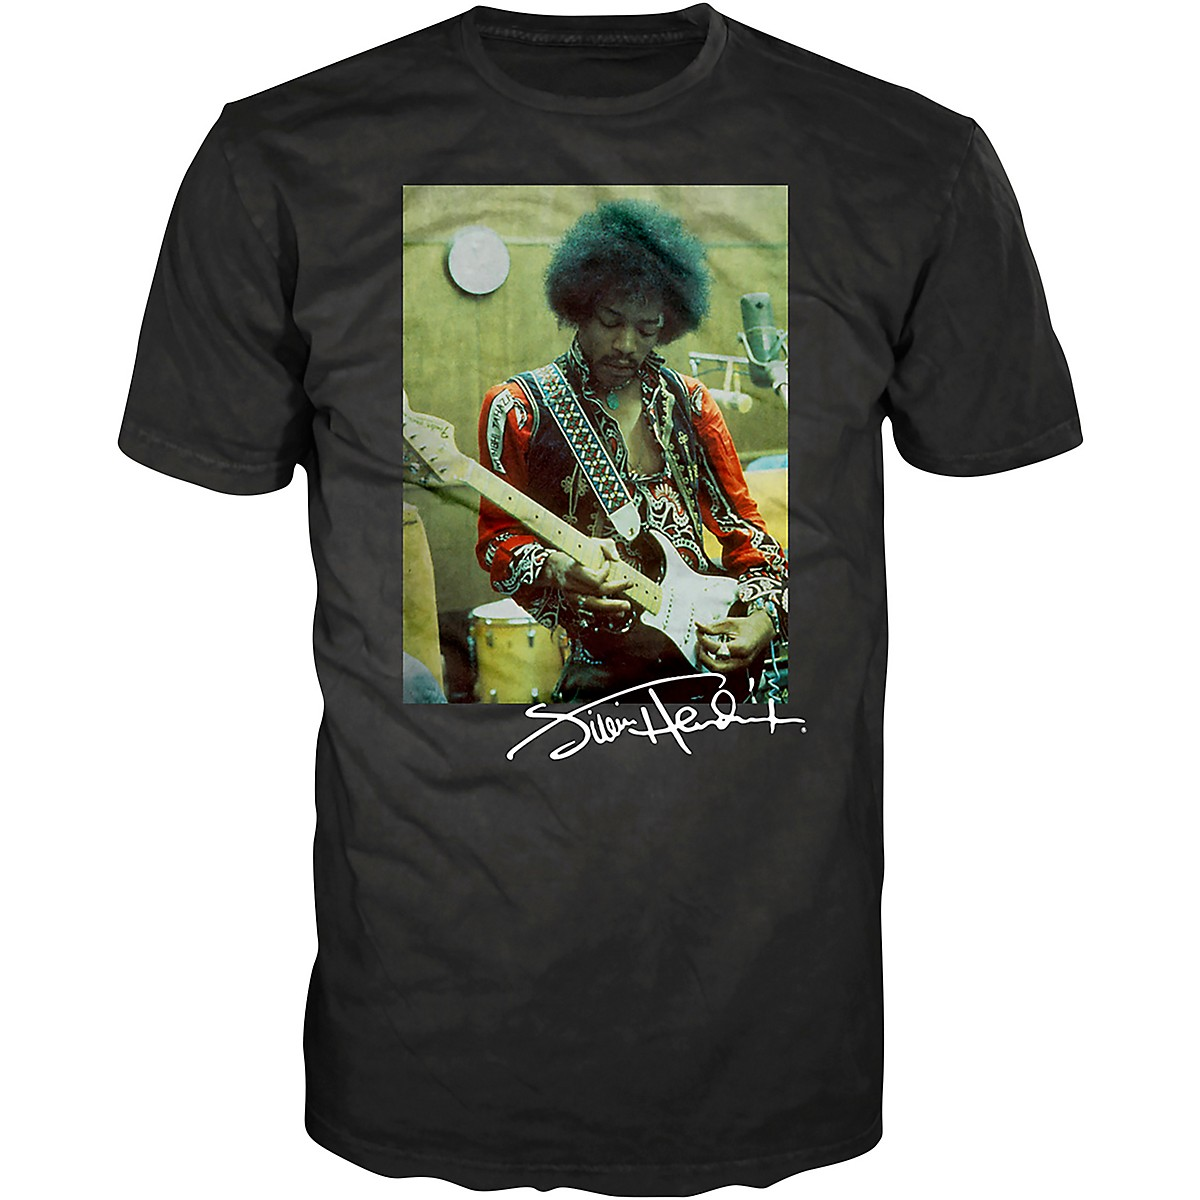 Guitar Center Jimi Hendrix In The Studio Photograph T-Shirt